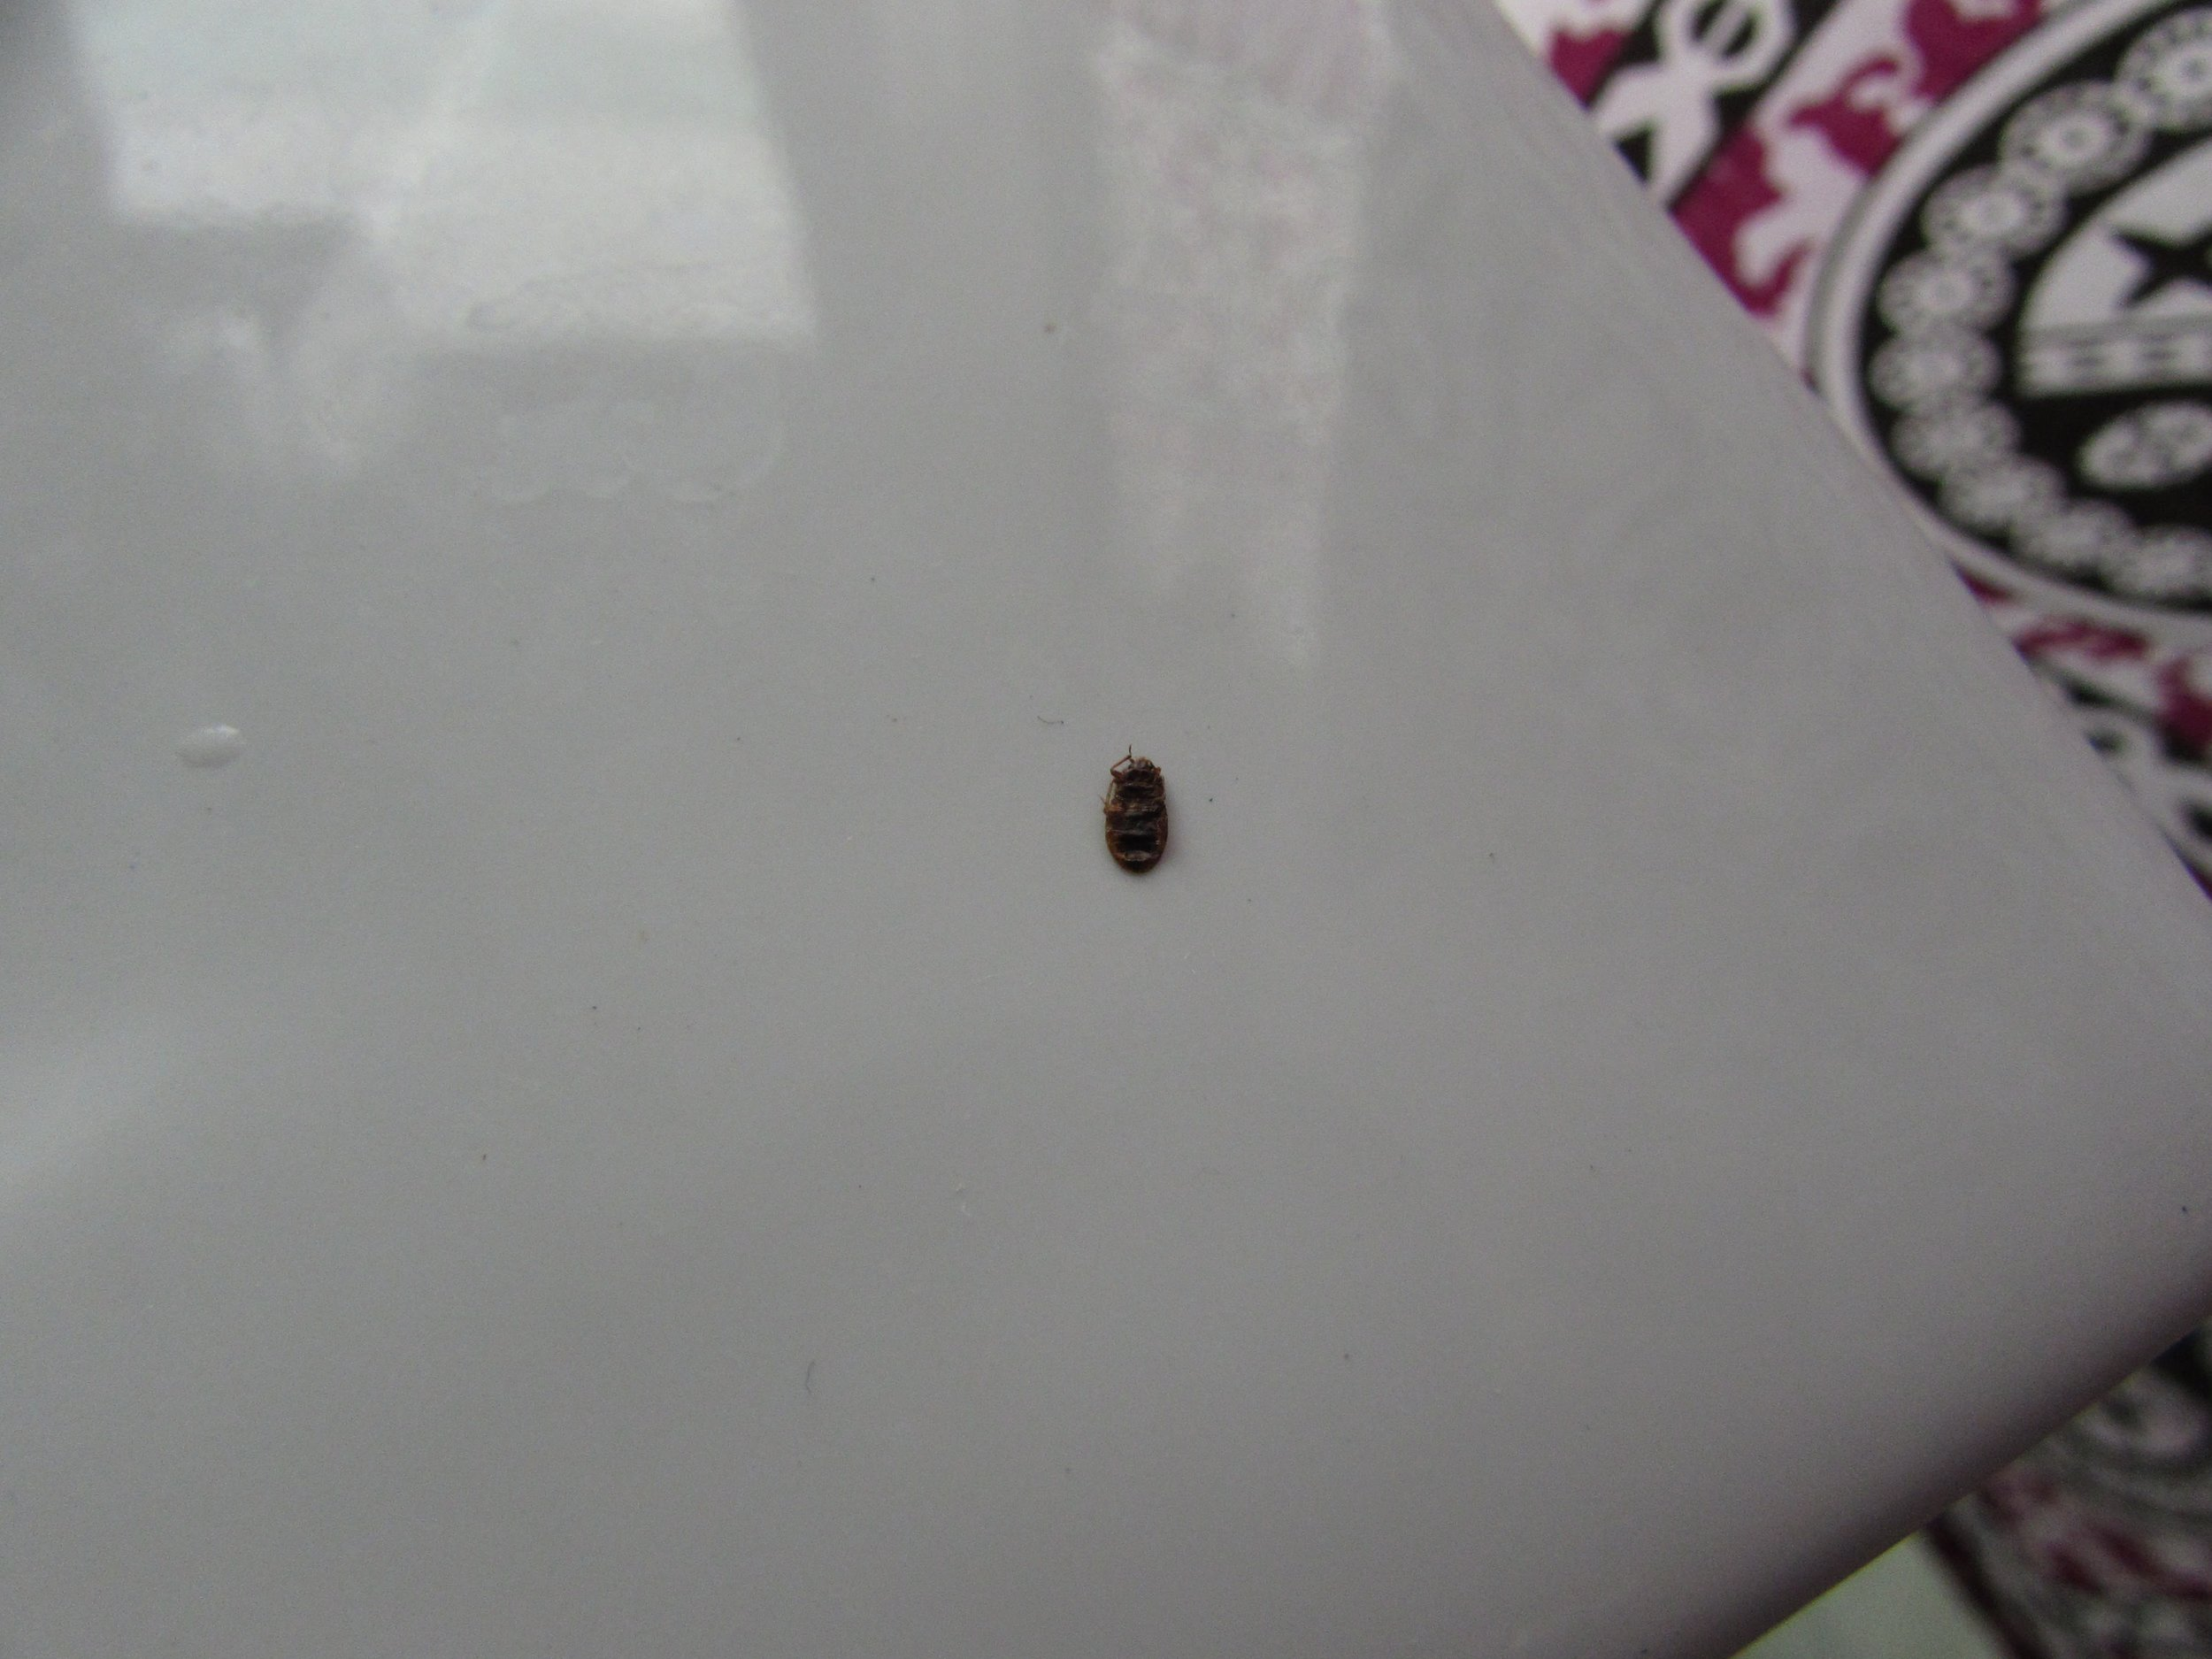 A dead bed bug, also in Nadi. Click for more detail.